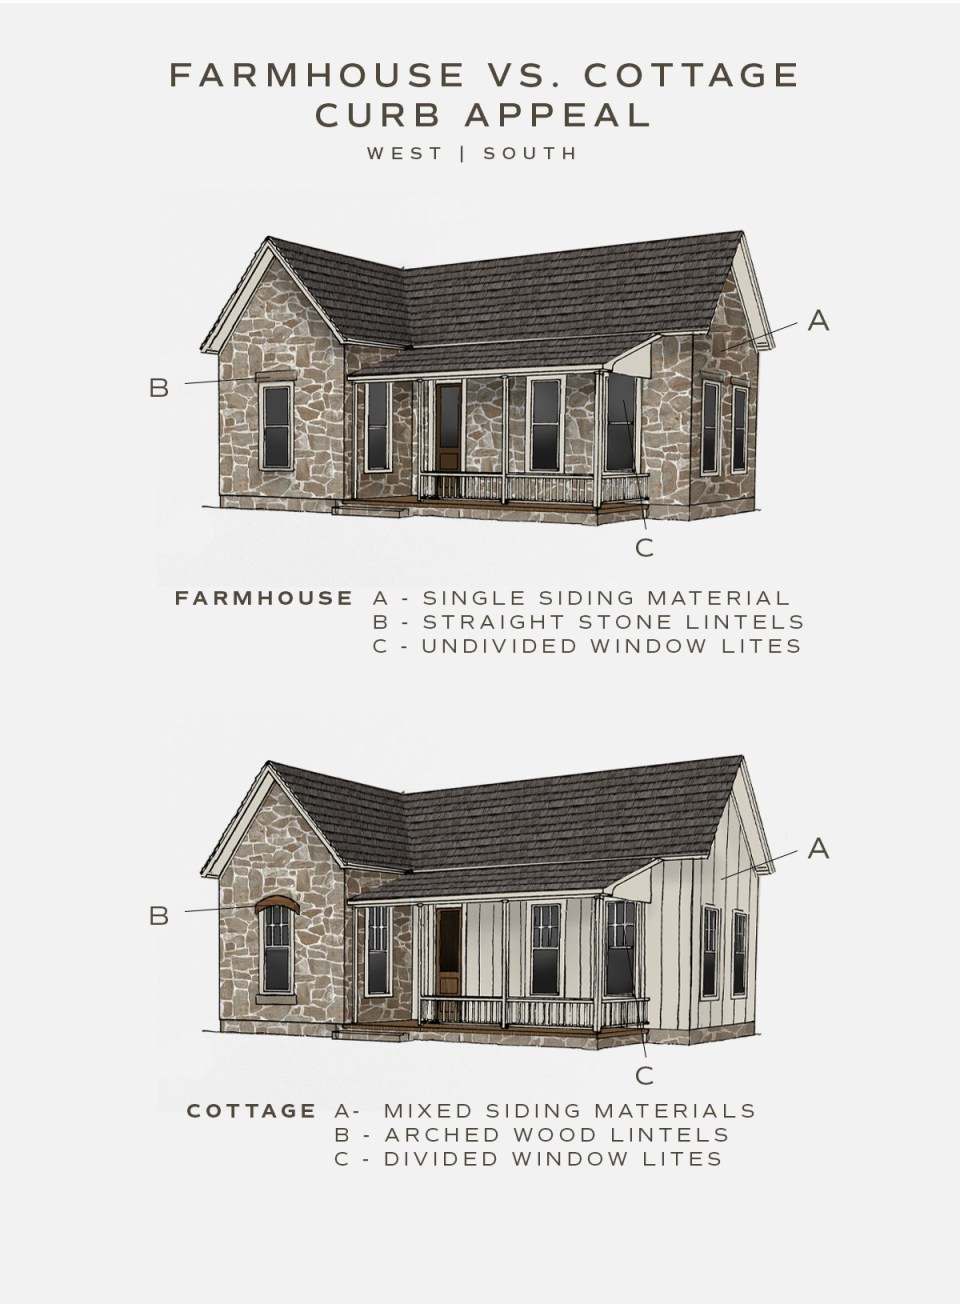 illustration of the difference between a farmhouse and a cottage